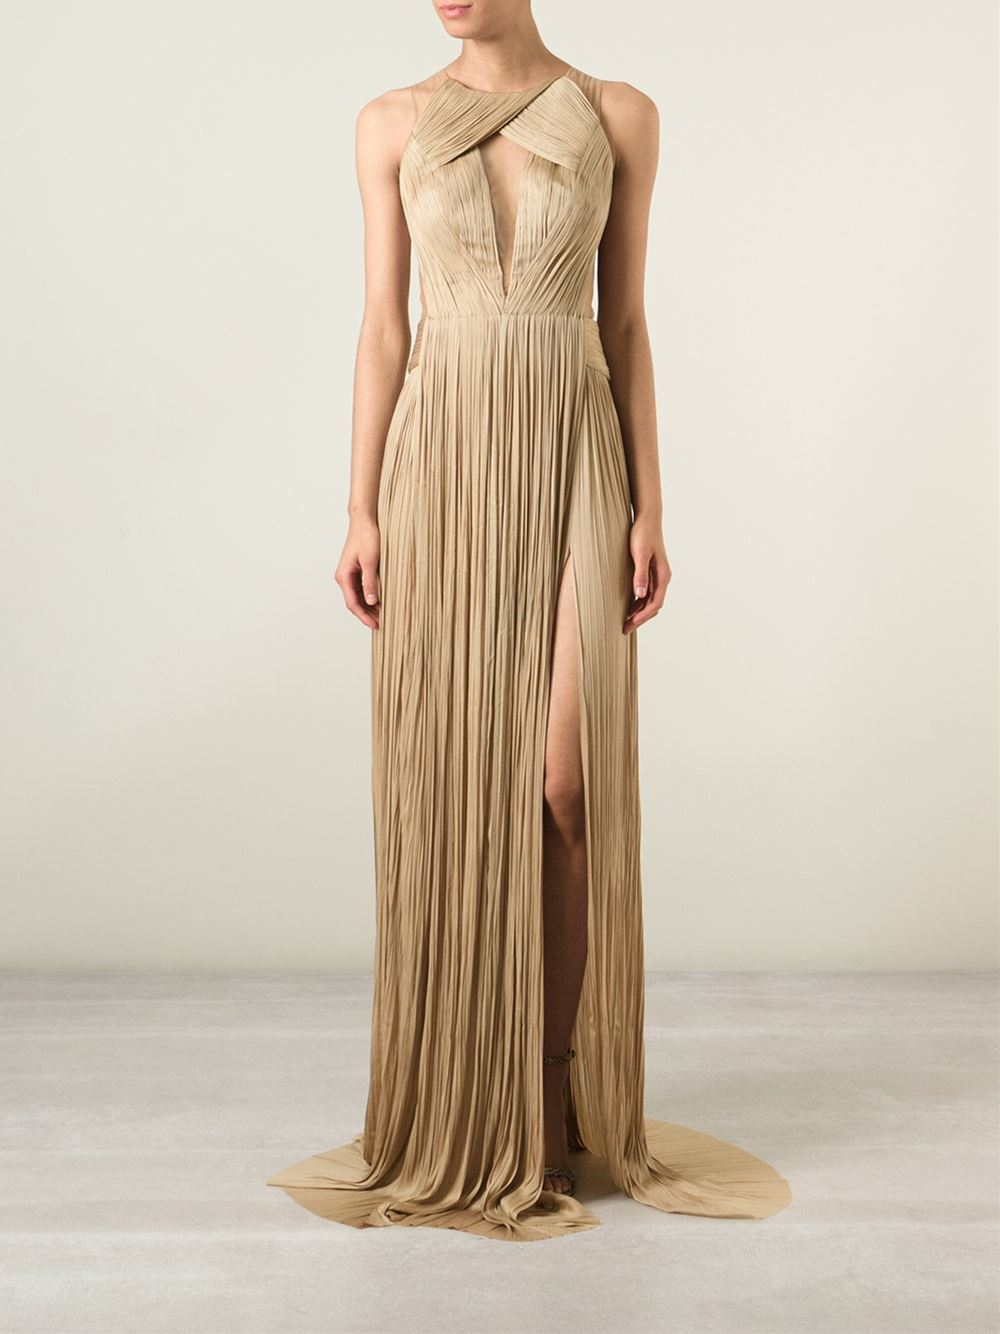 Lyst - Maria Lucia Hohan Mesh-Panel Pleated Gown In Metallic-1048